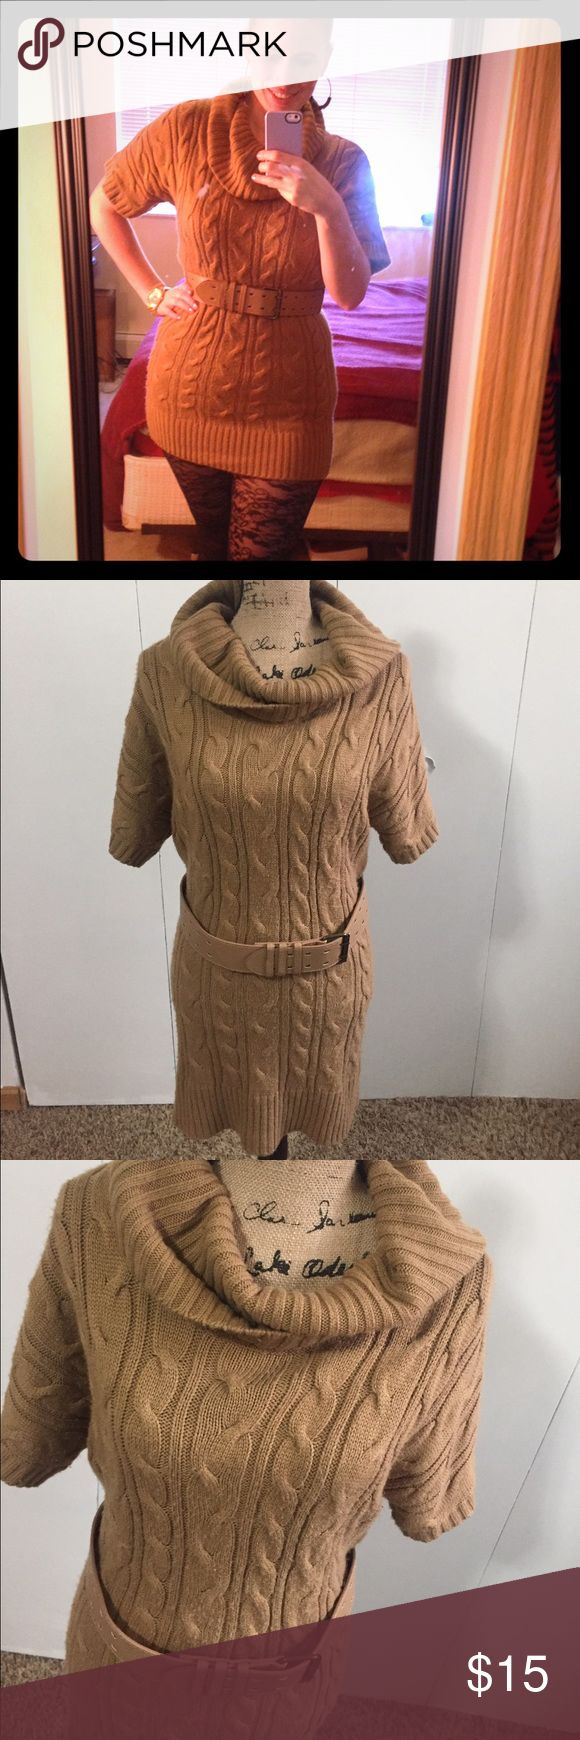 Forever 21 large tan cowl neck sweater dress Forever 21 large tan cowl neck sweater dress. Worn many times. The fabric has become somewhat fuzzy. It is still in okay condition. About 6/10. Very cute. Forever 21 Dresses